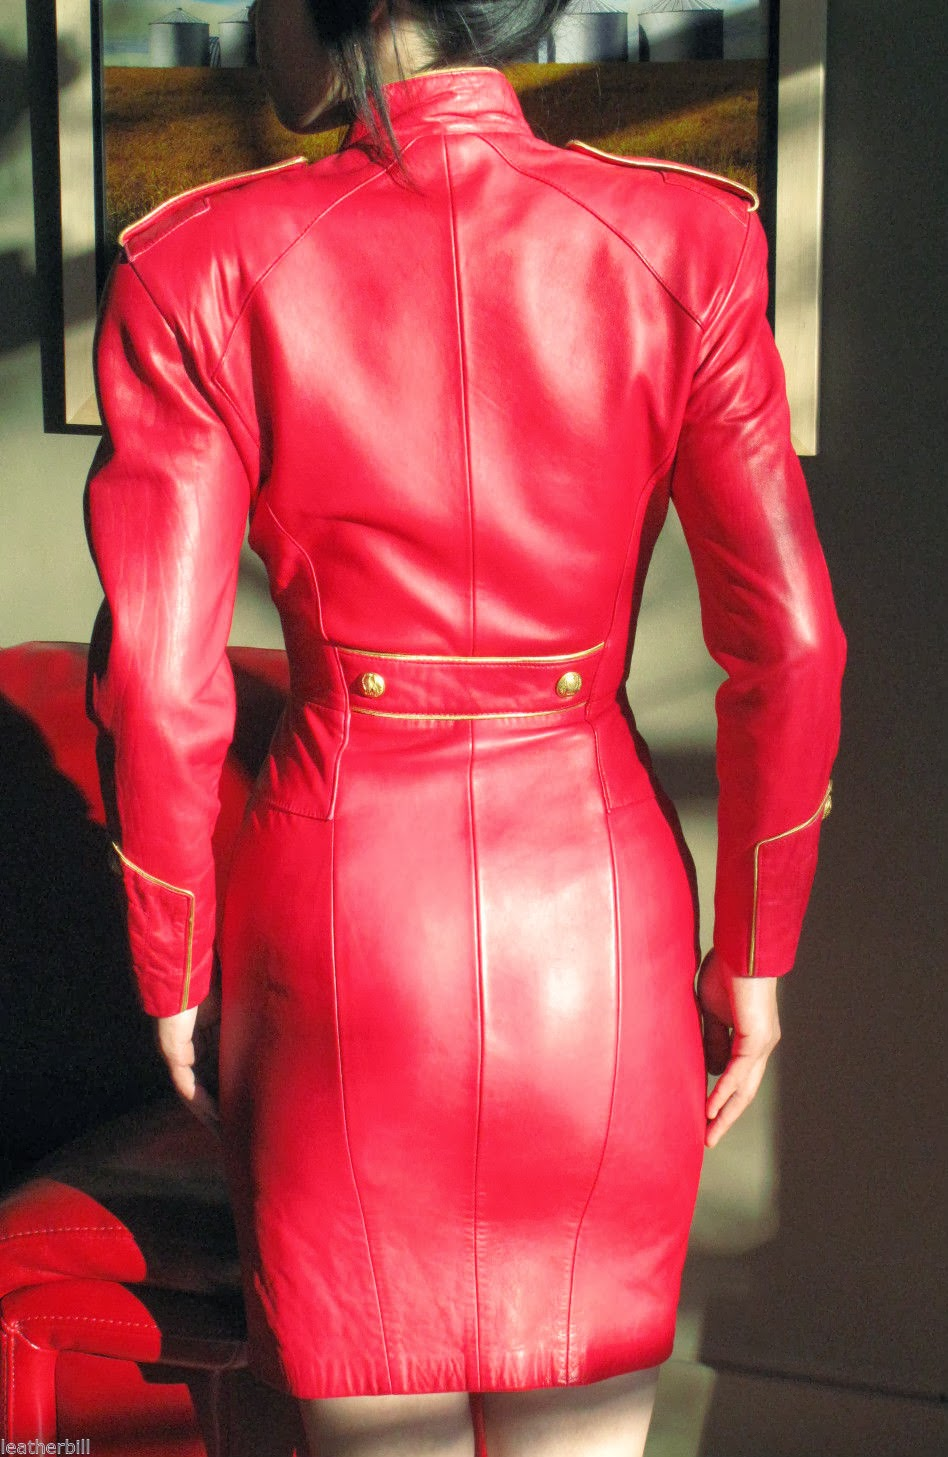 Ebay Leather An Assortment Of Recent Leather Dress Sales